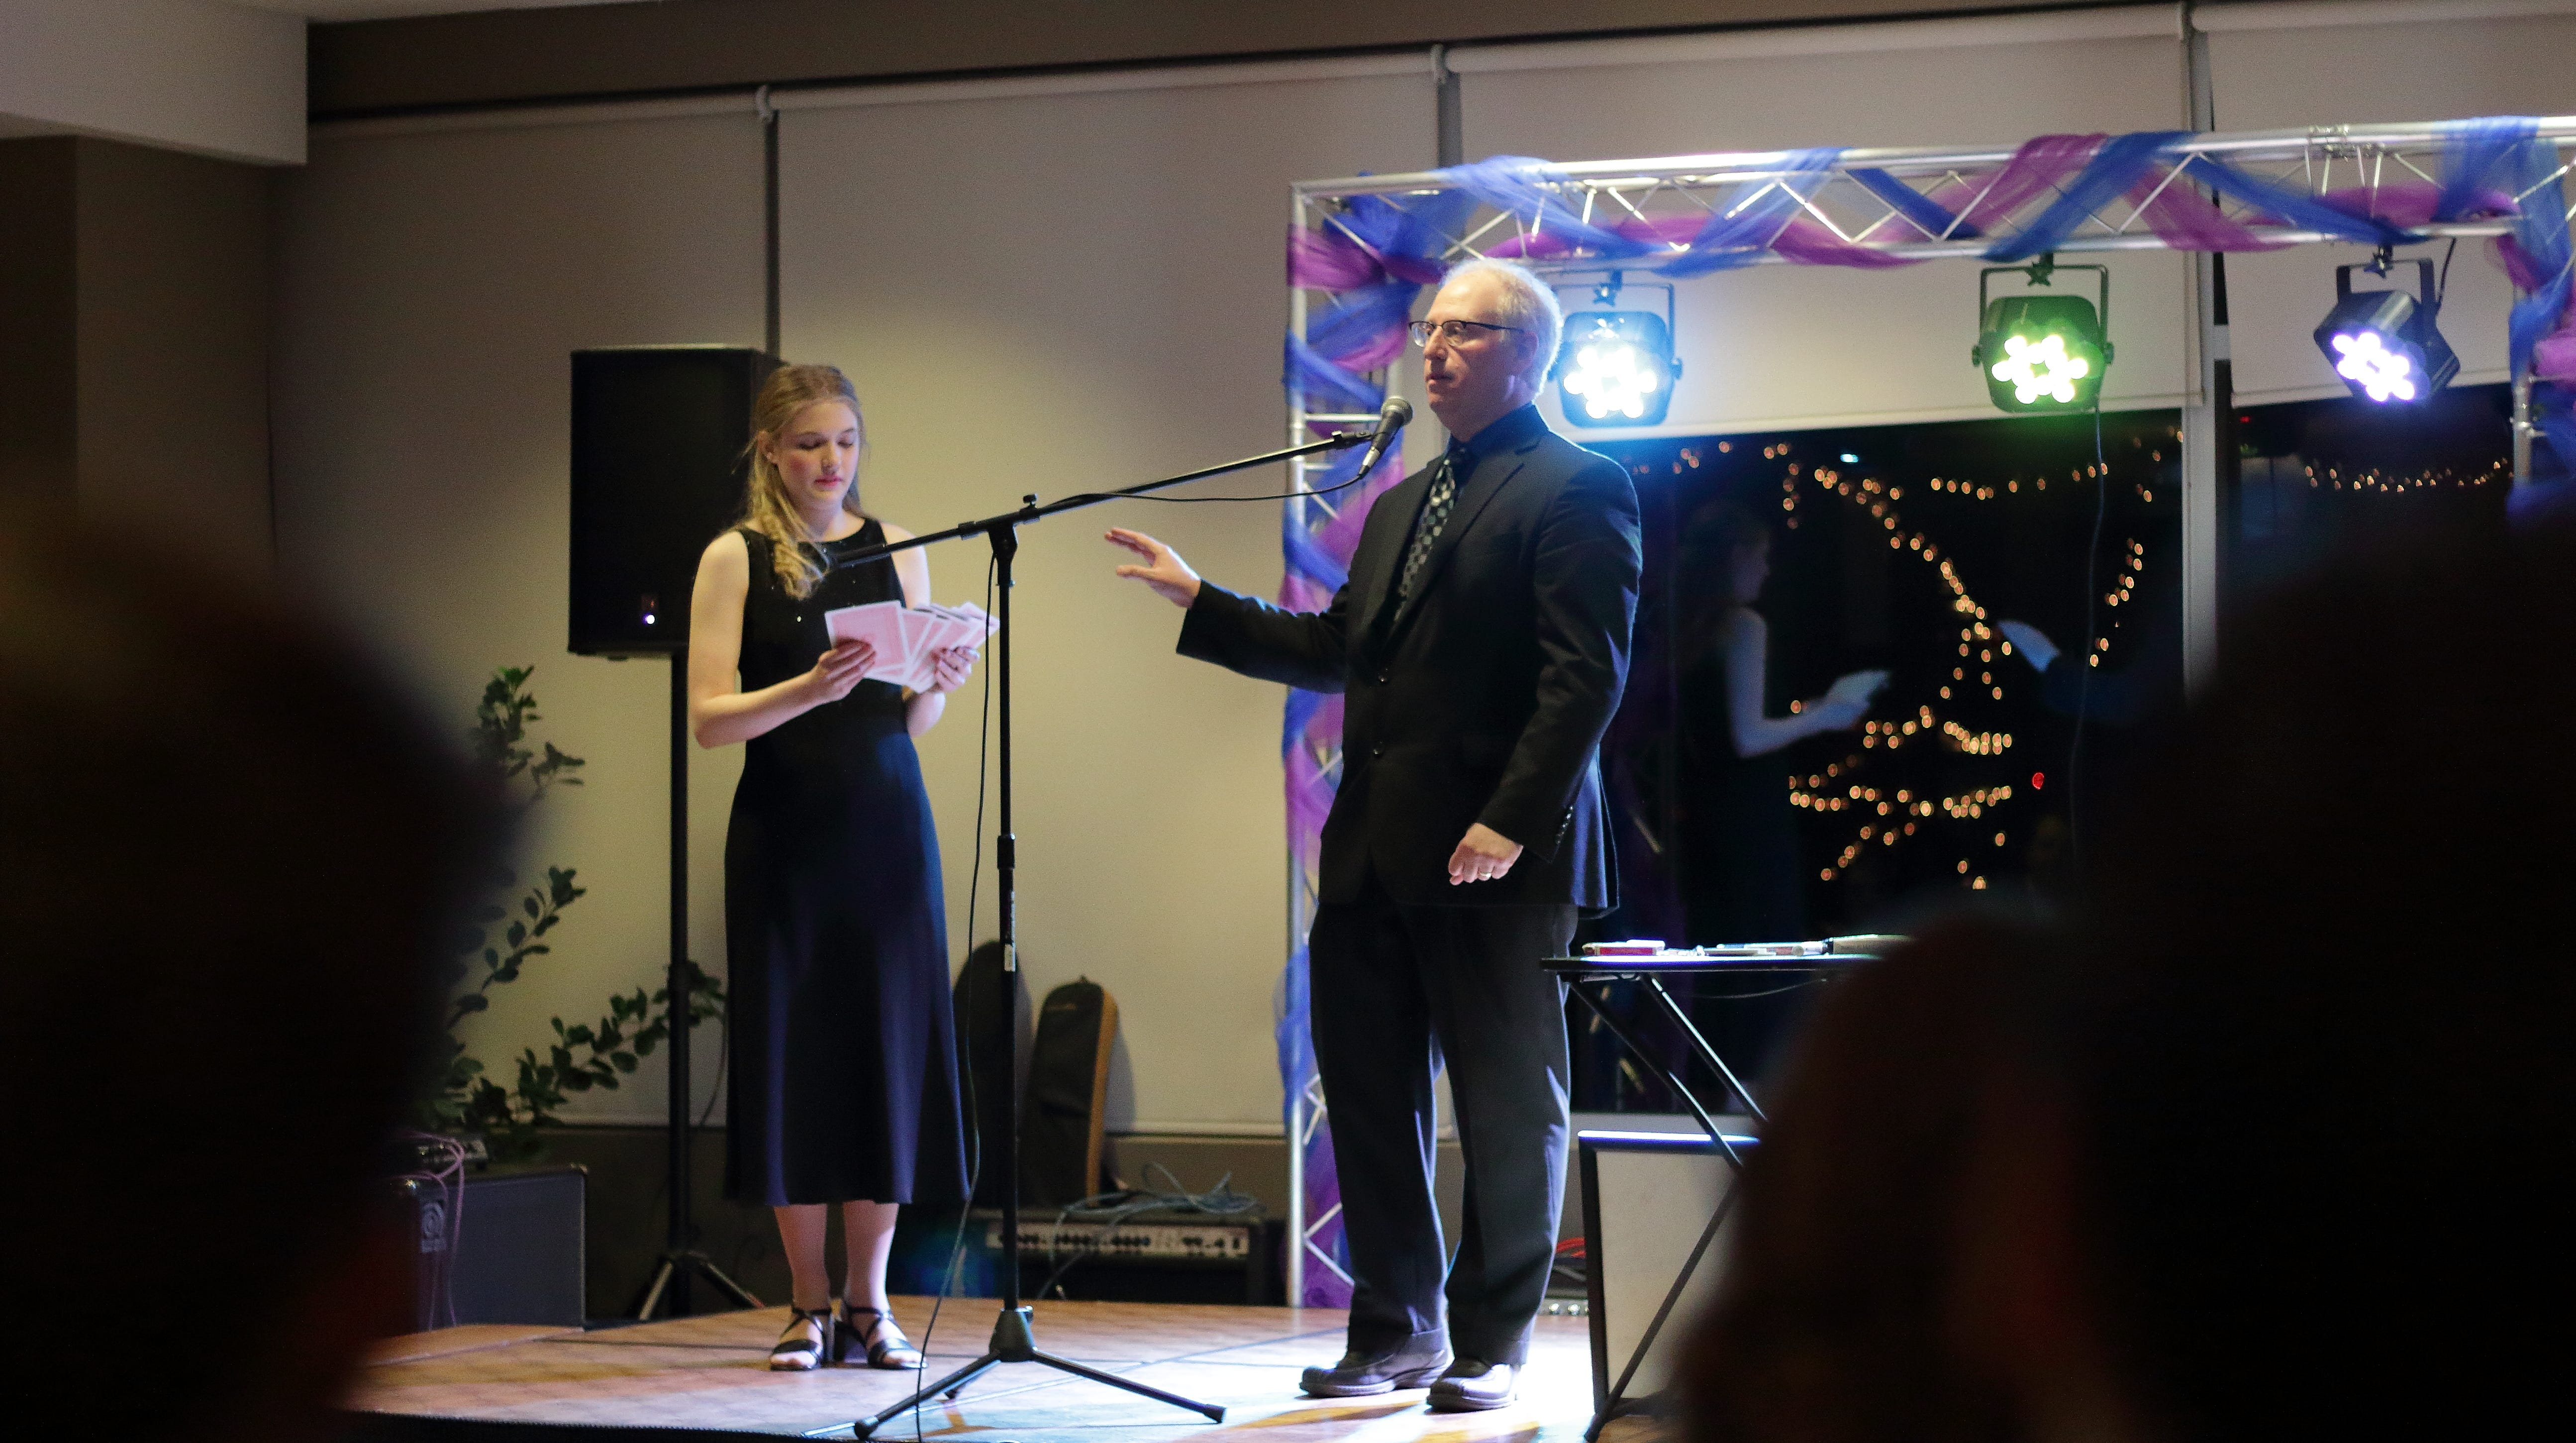 Magician Scott Starkey, right, brings his interactive show to the Art Museum of Greater Lafayette on Oct. 30.